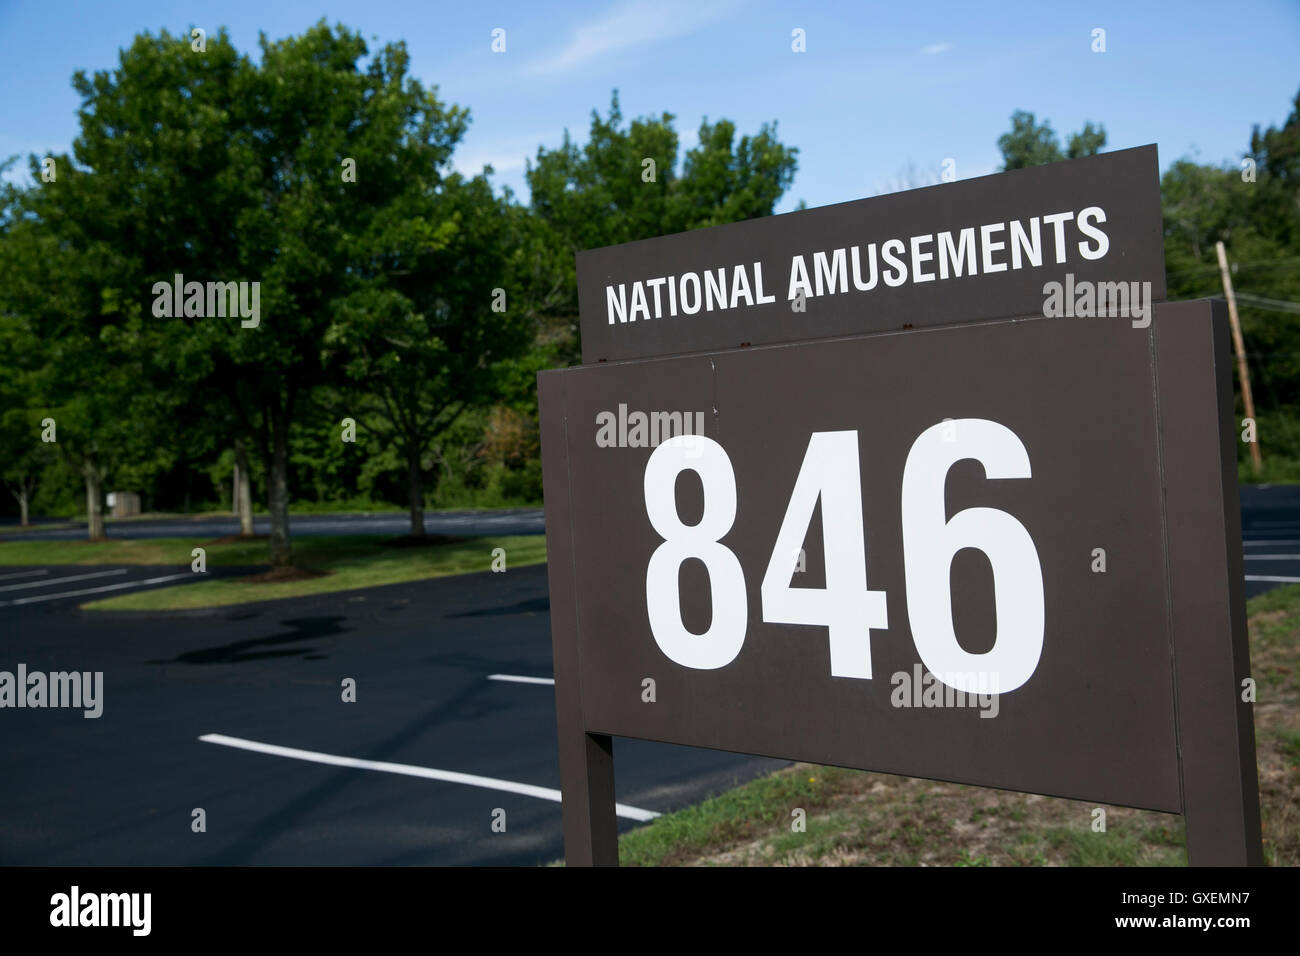 A logo sign outside of the headquarters of National Amusements, Inc., in Norwood, Massachusetts on August 14, 2016. - Stock Image